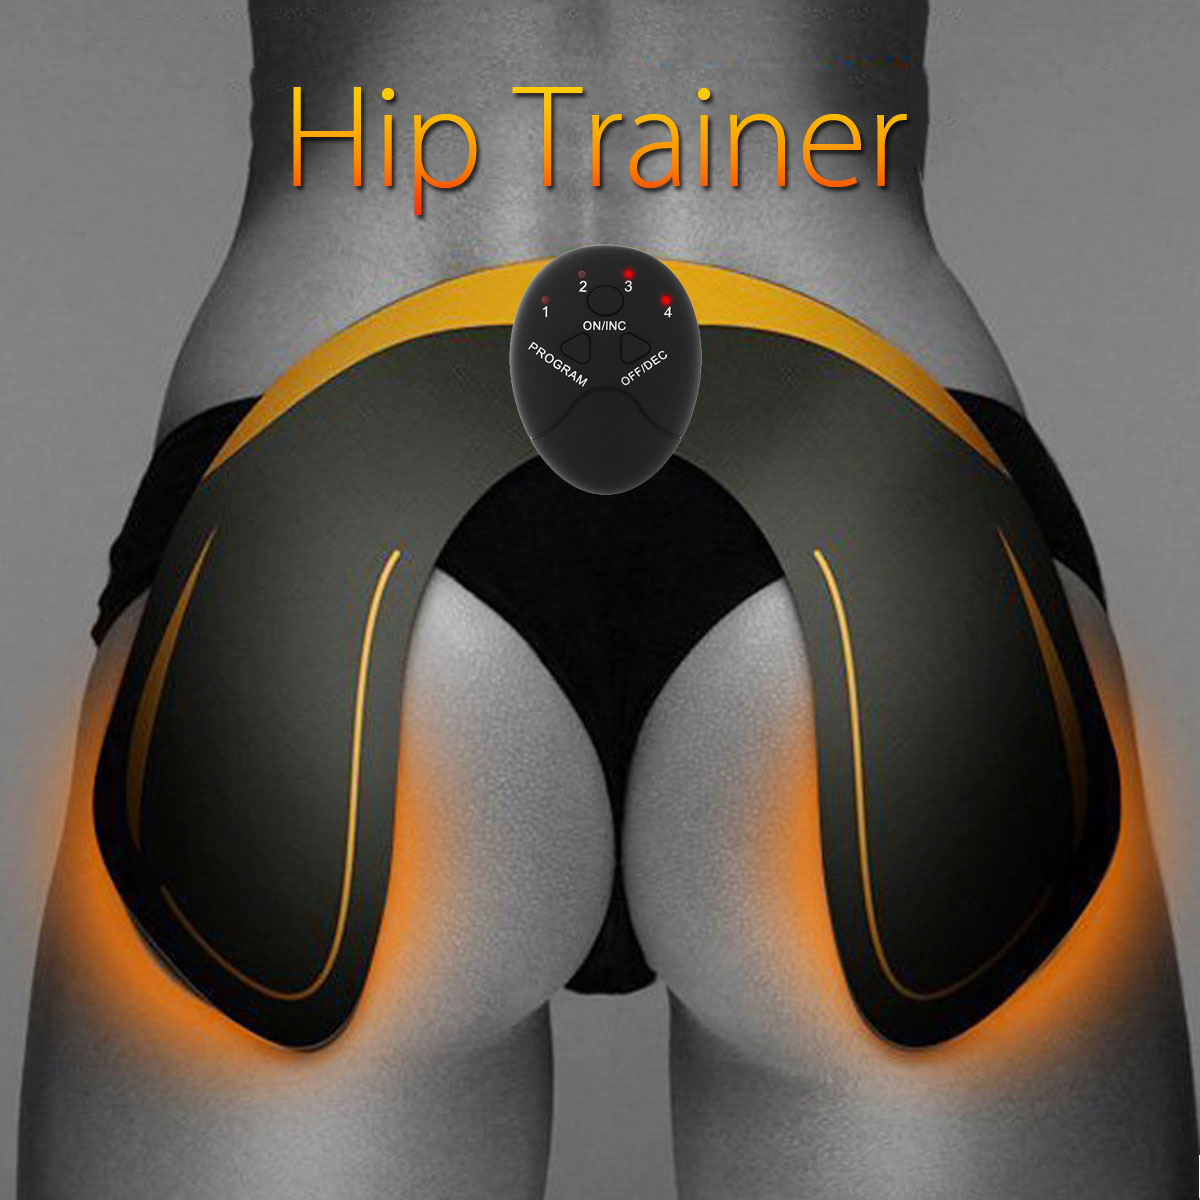 DIY Accessories 6 Modes Intelligent EMS Hip Trainer Buttocks Butt Lifting Bum Lift Up Stimulator Muscle Smart Body Building Fitness Postpartum Body Shaper